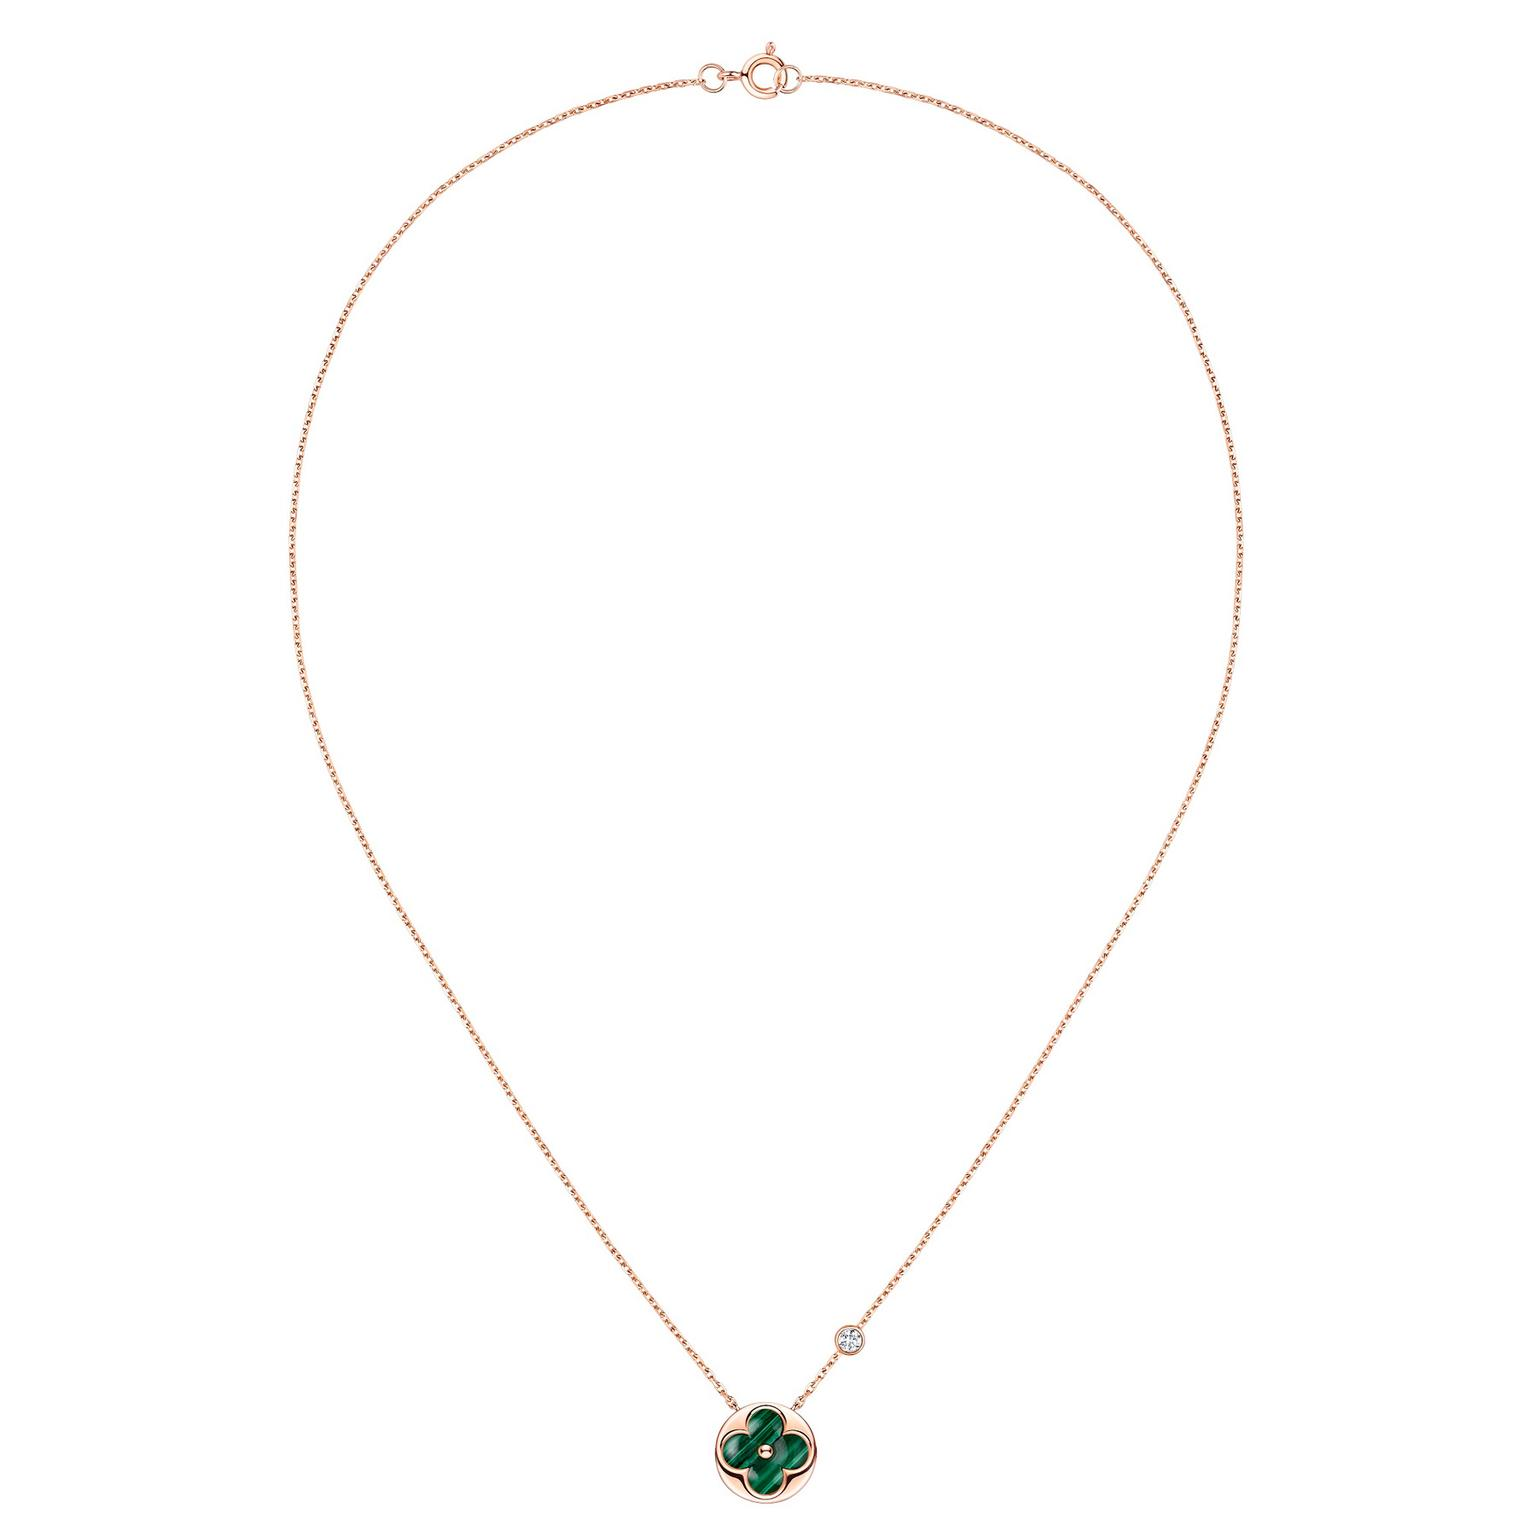 Louis Vuitton Color Blossom BB Sun necklace